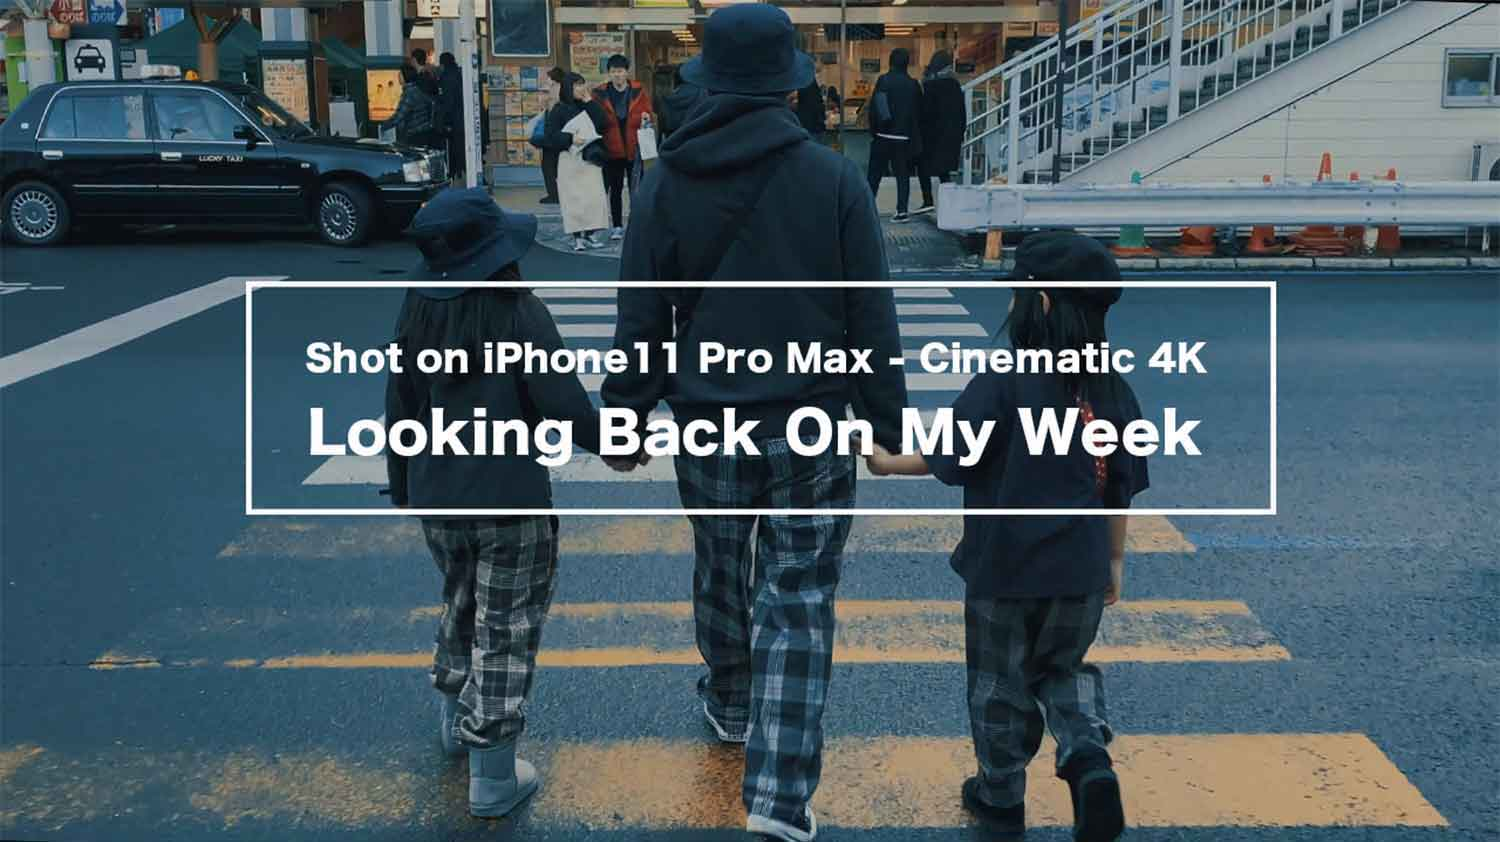 Shot-on-iPhone11-Pro-Max-Cinematic-4K--Looking-back-on-my-week